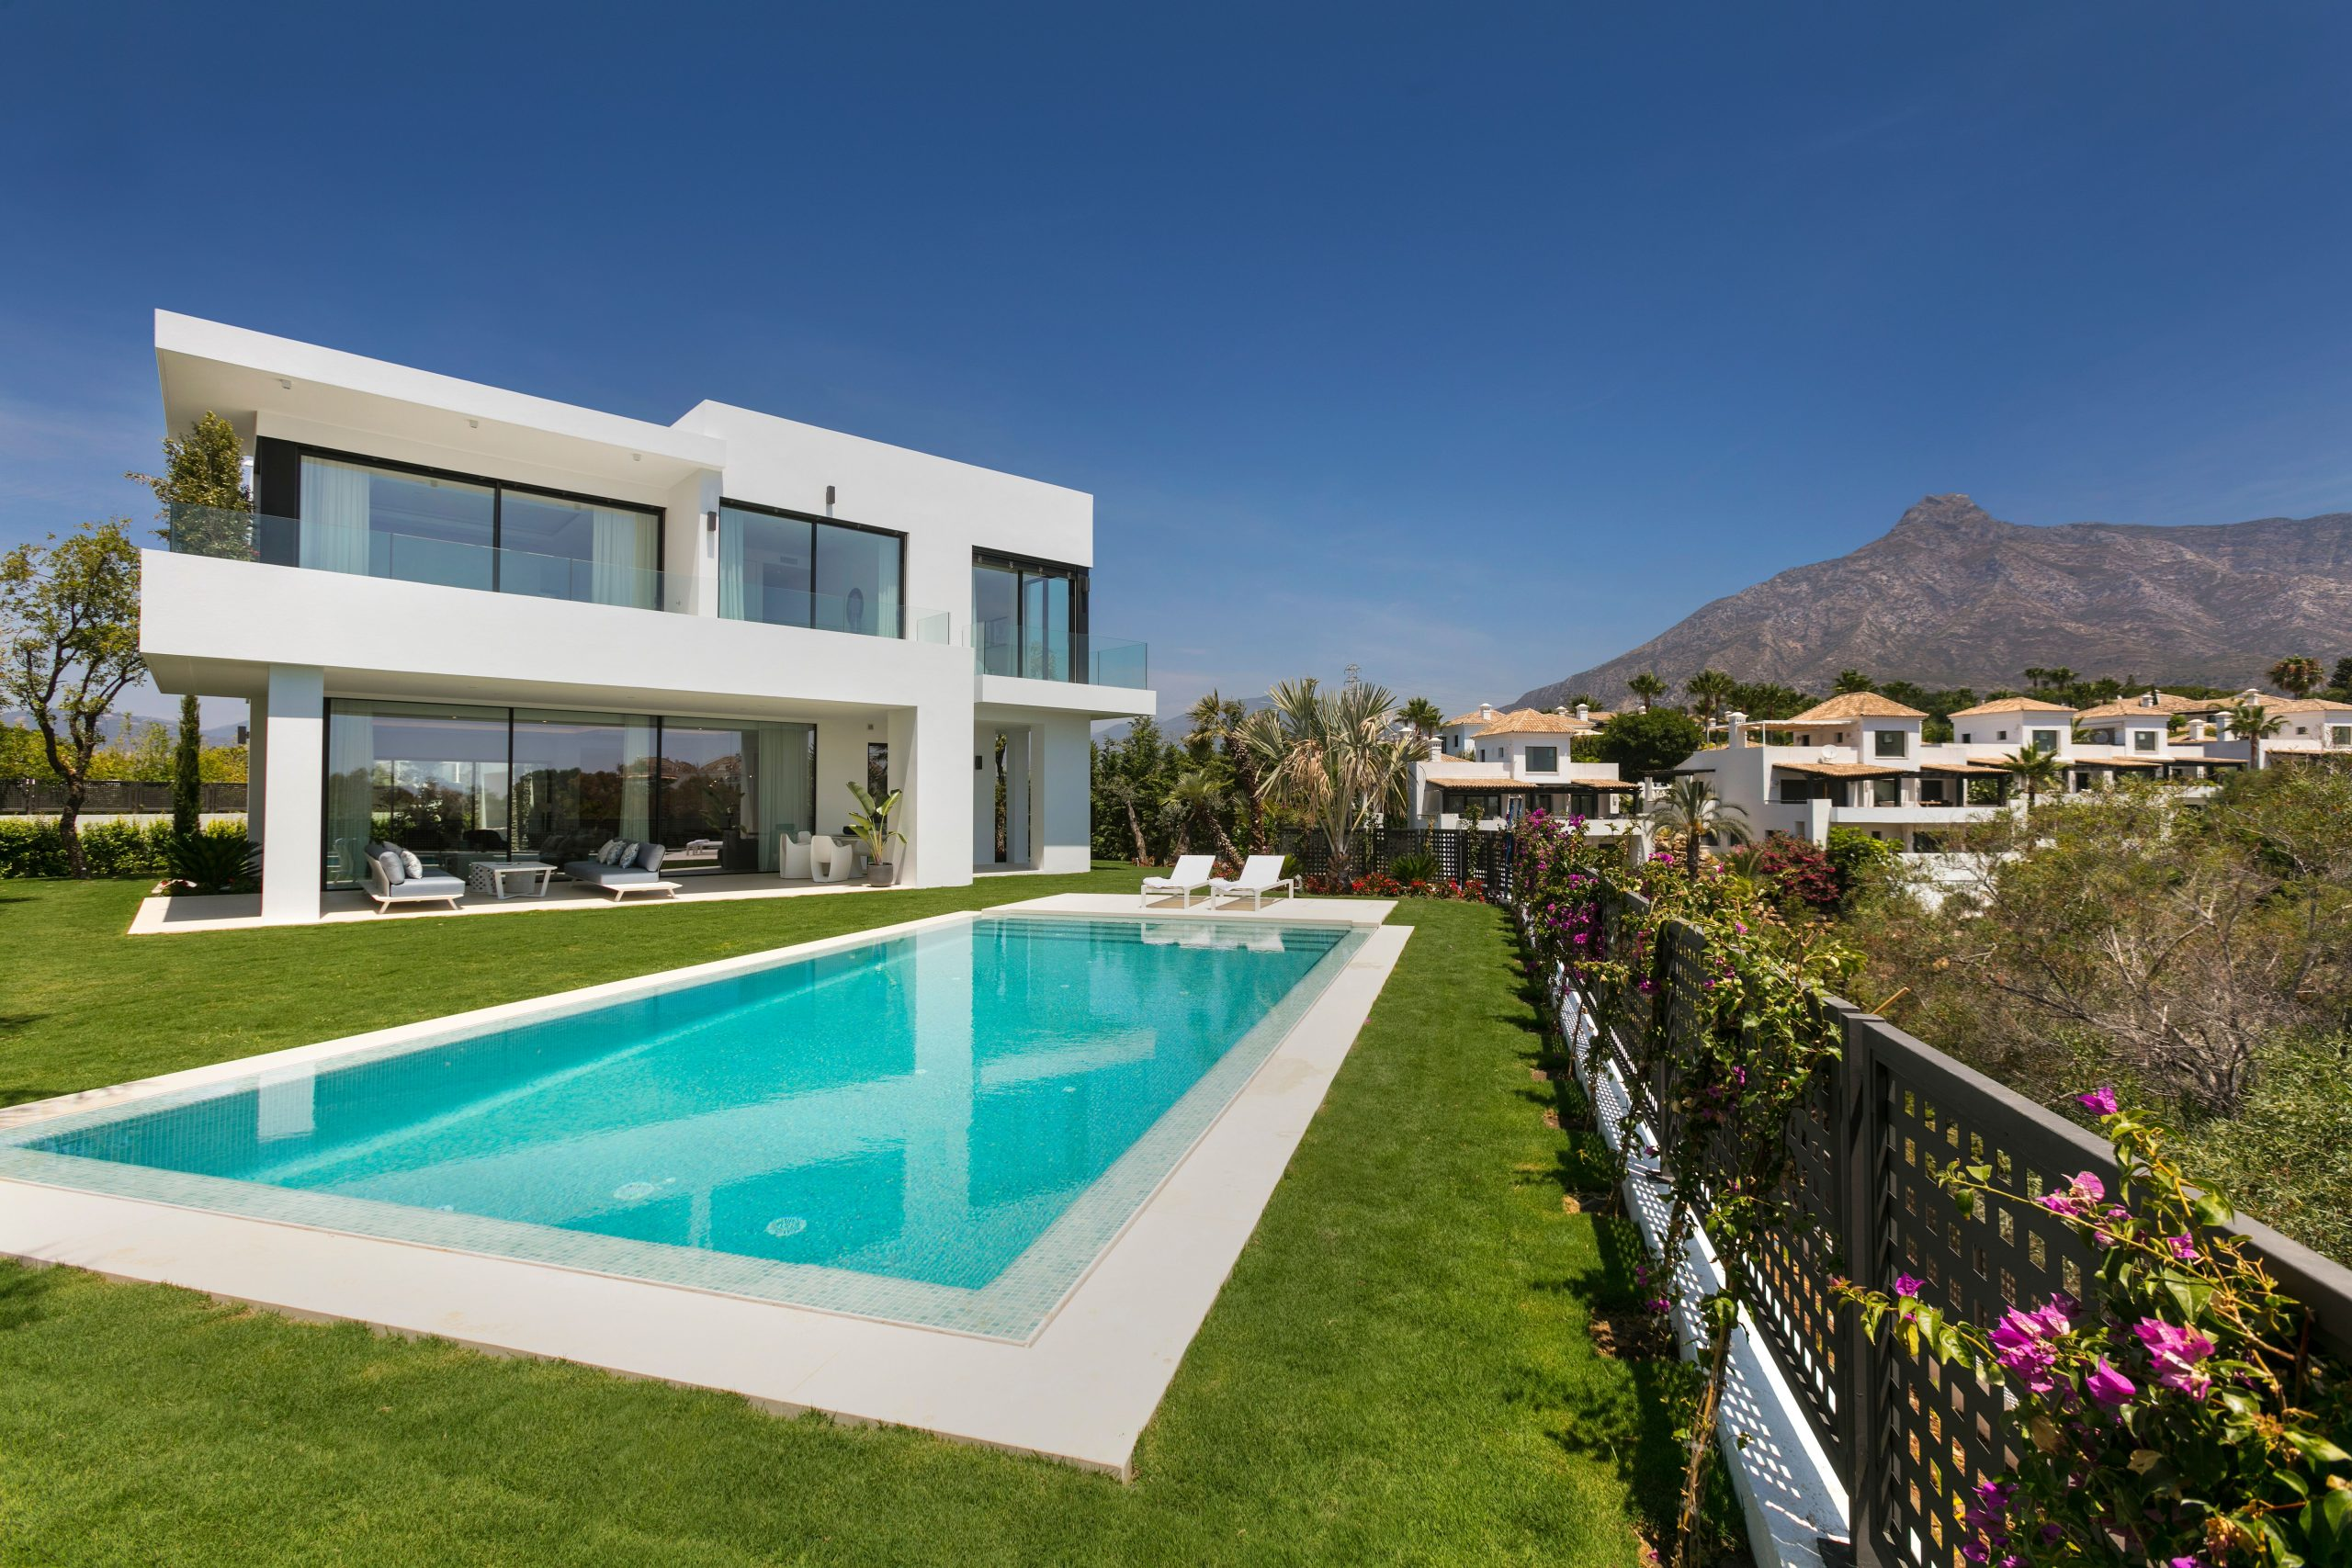 New villa in Marbella and Costa del Sol